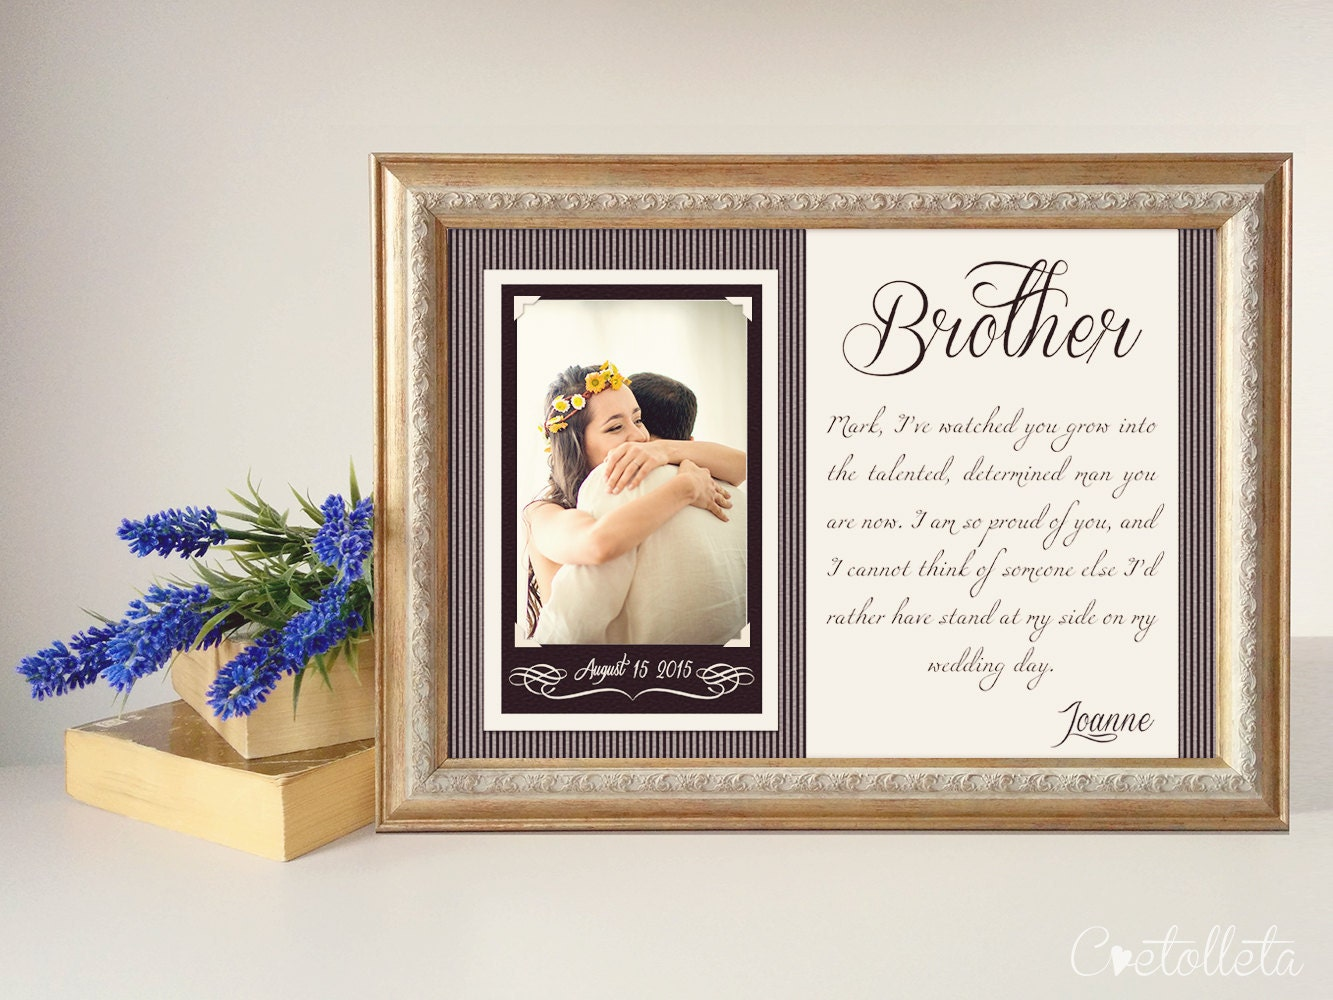 Wedding Gifts For Bride From Best Friend: Brother Wedding Gift Best Friend Thank You Gift By Cvetolleta